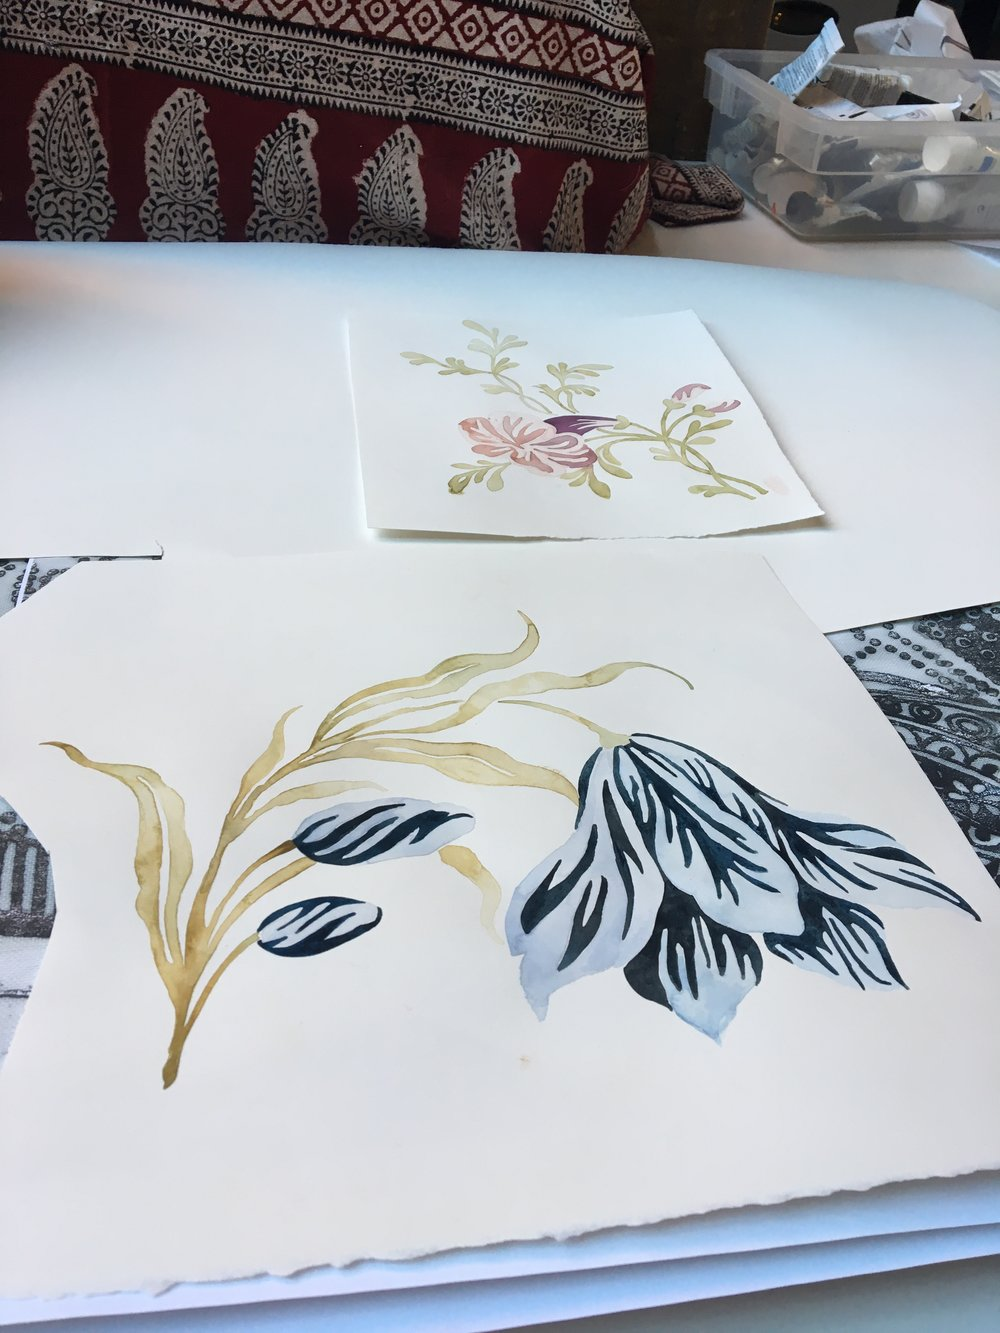 Watercolor Floral process 1